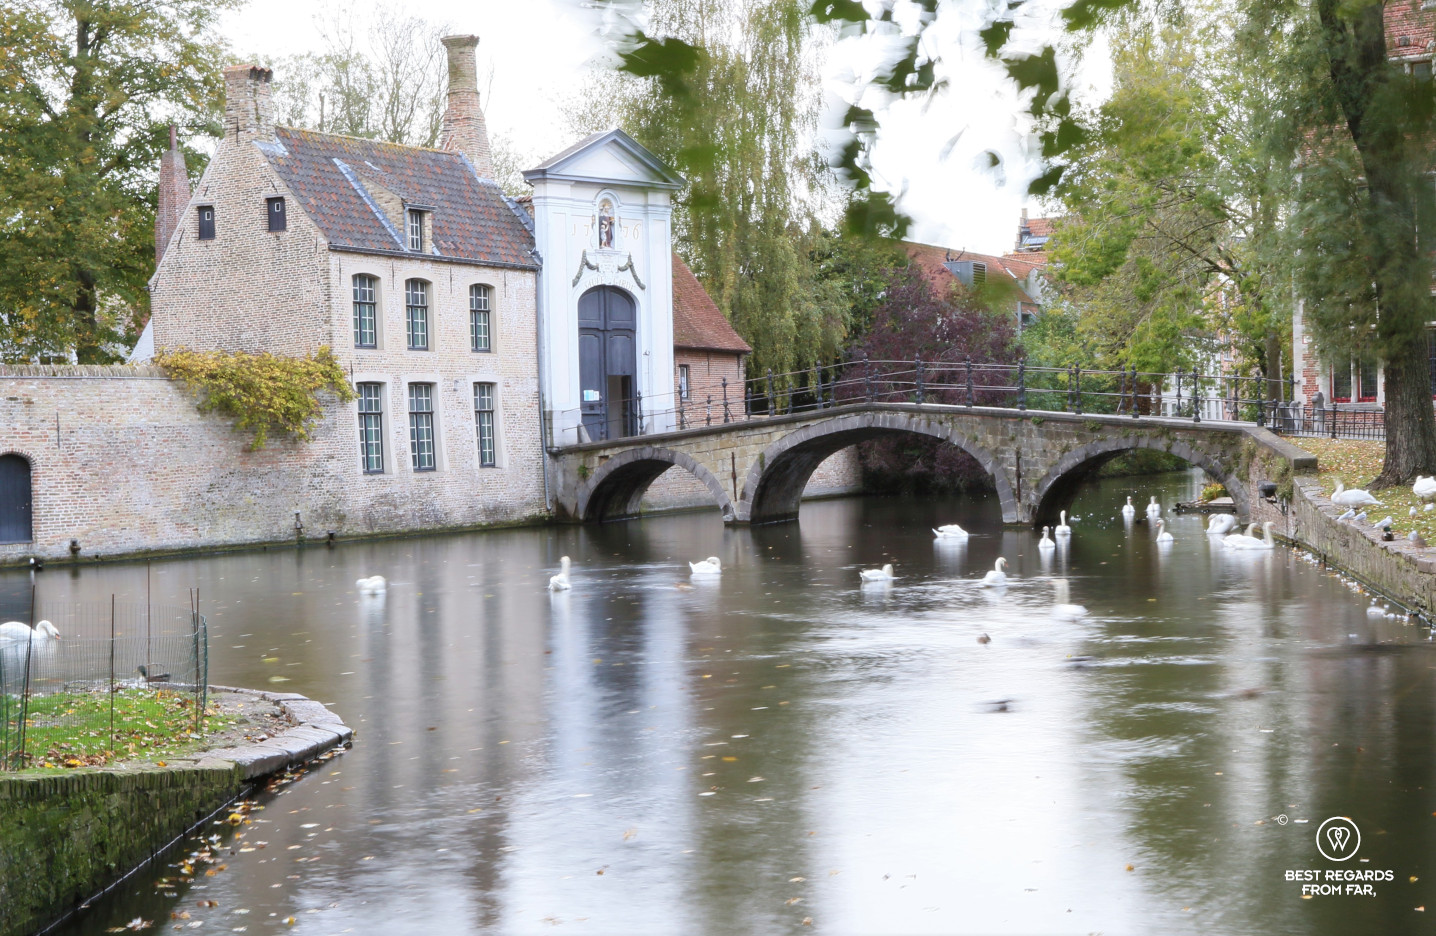 Beguinage with the swans, Bruges, Belgium